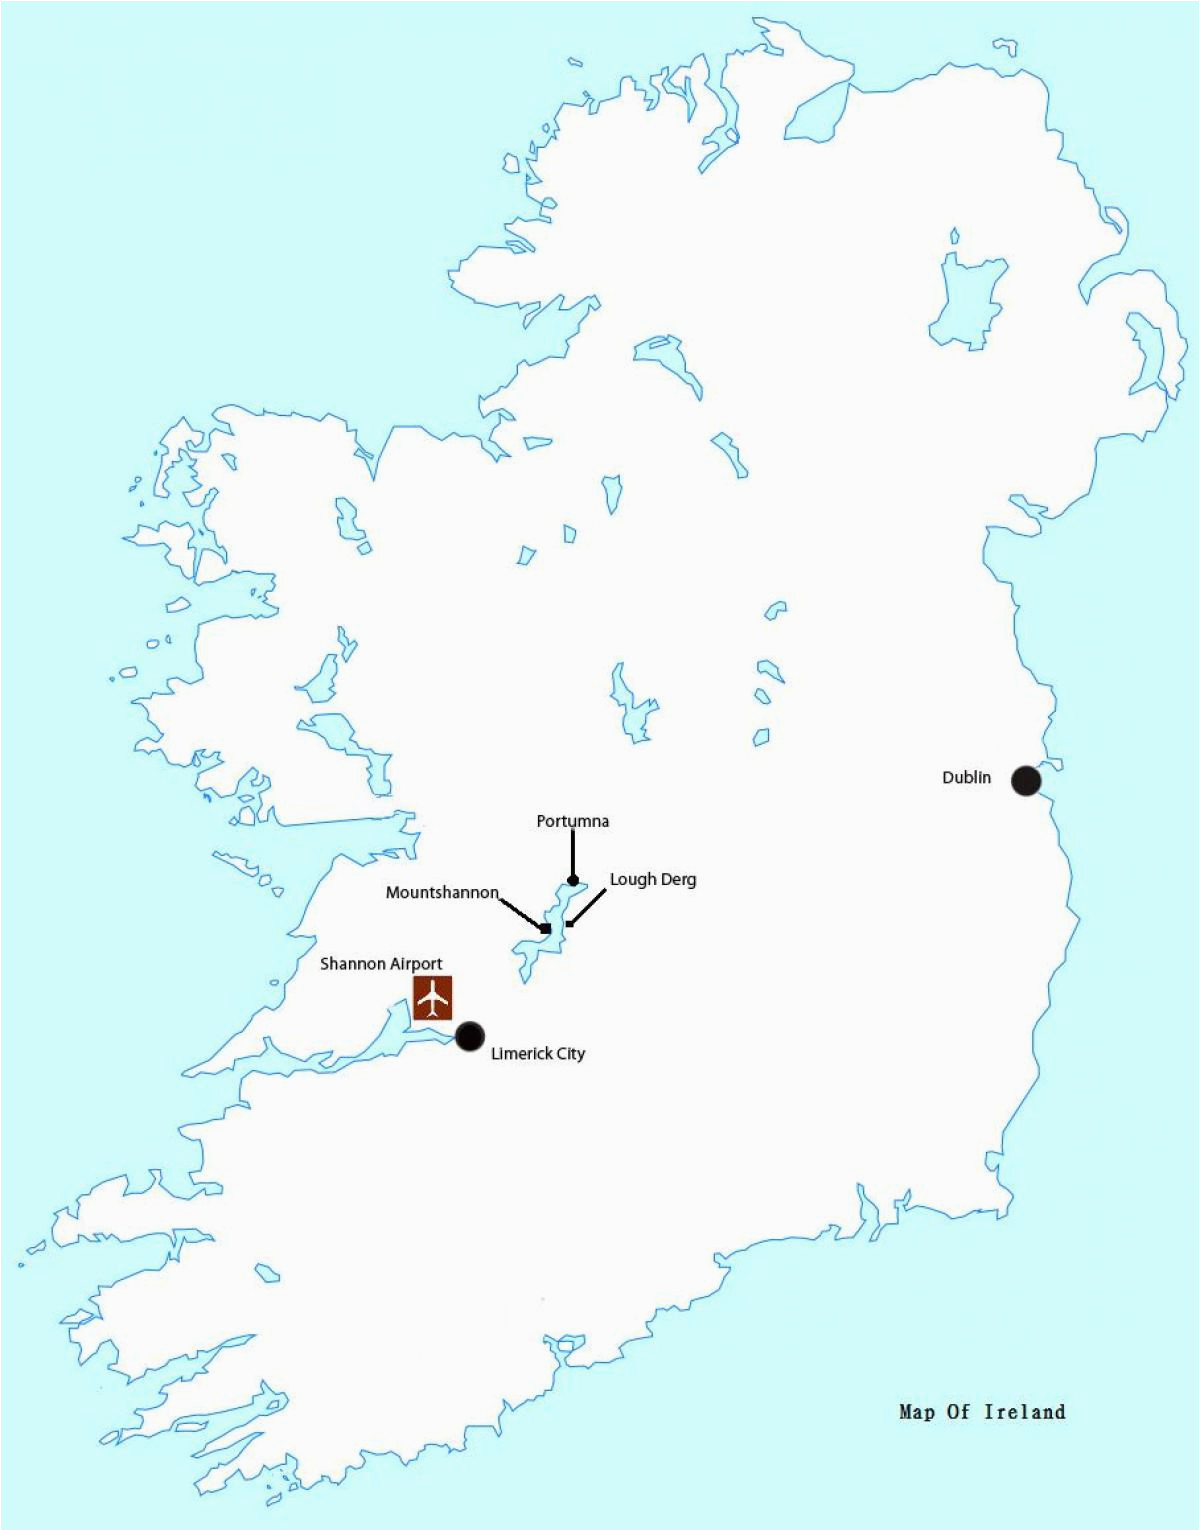 map of ireland shannon airport unsecureflight nl